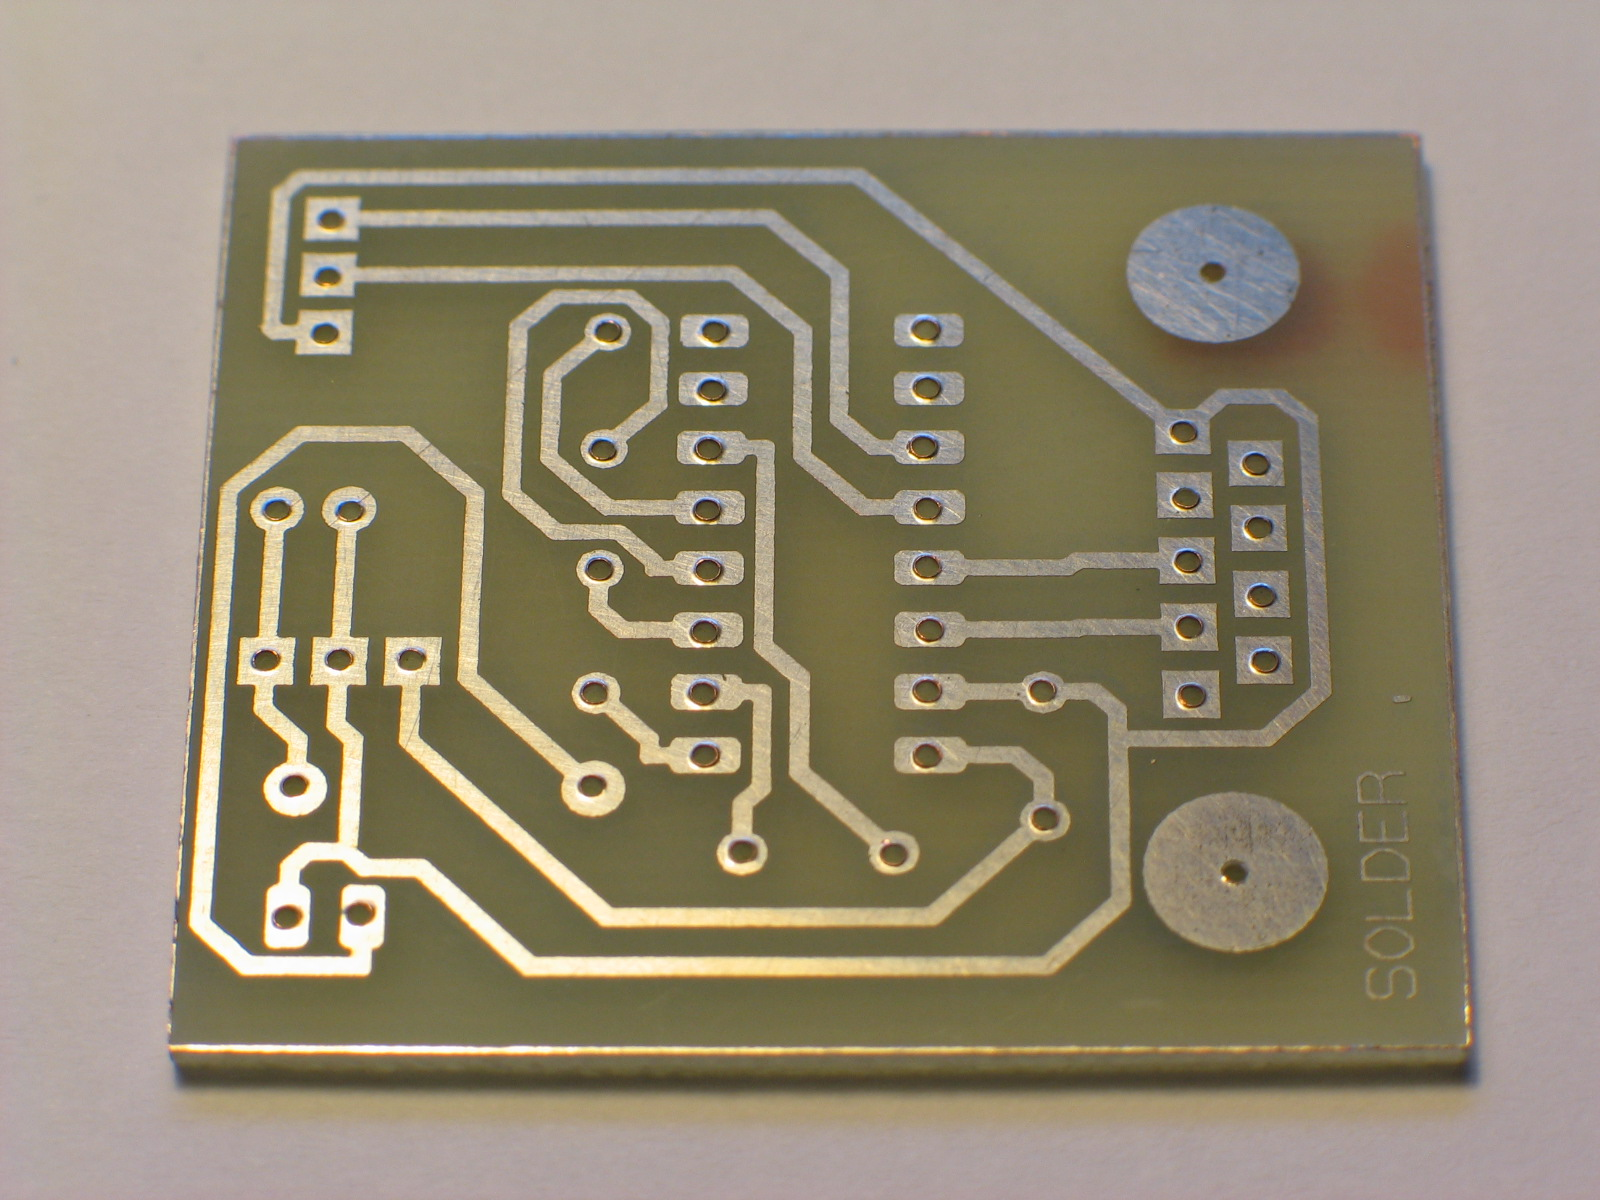 Design For The Environment Printed Wiring Board Project Boards